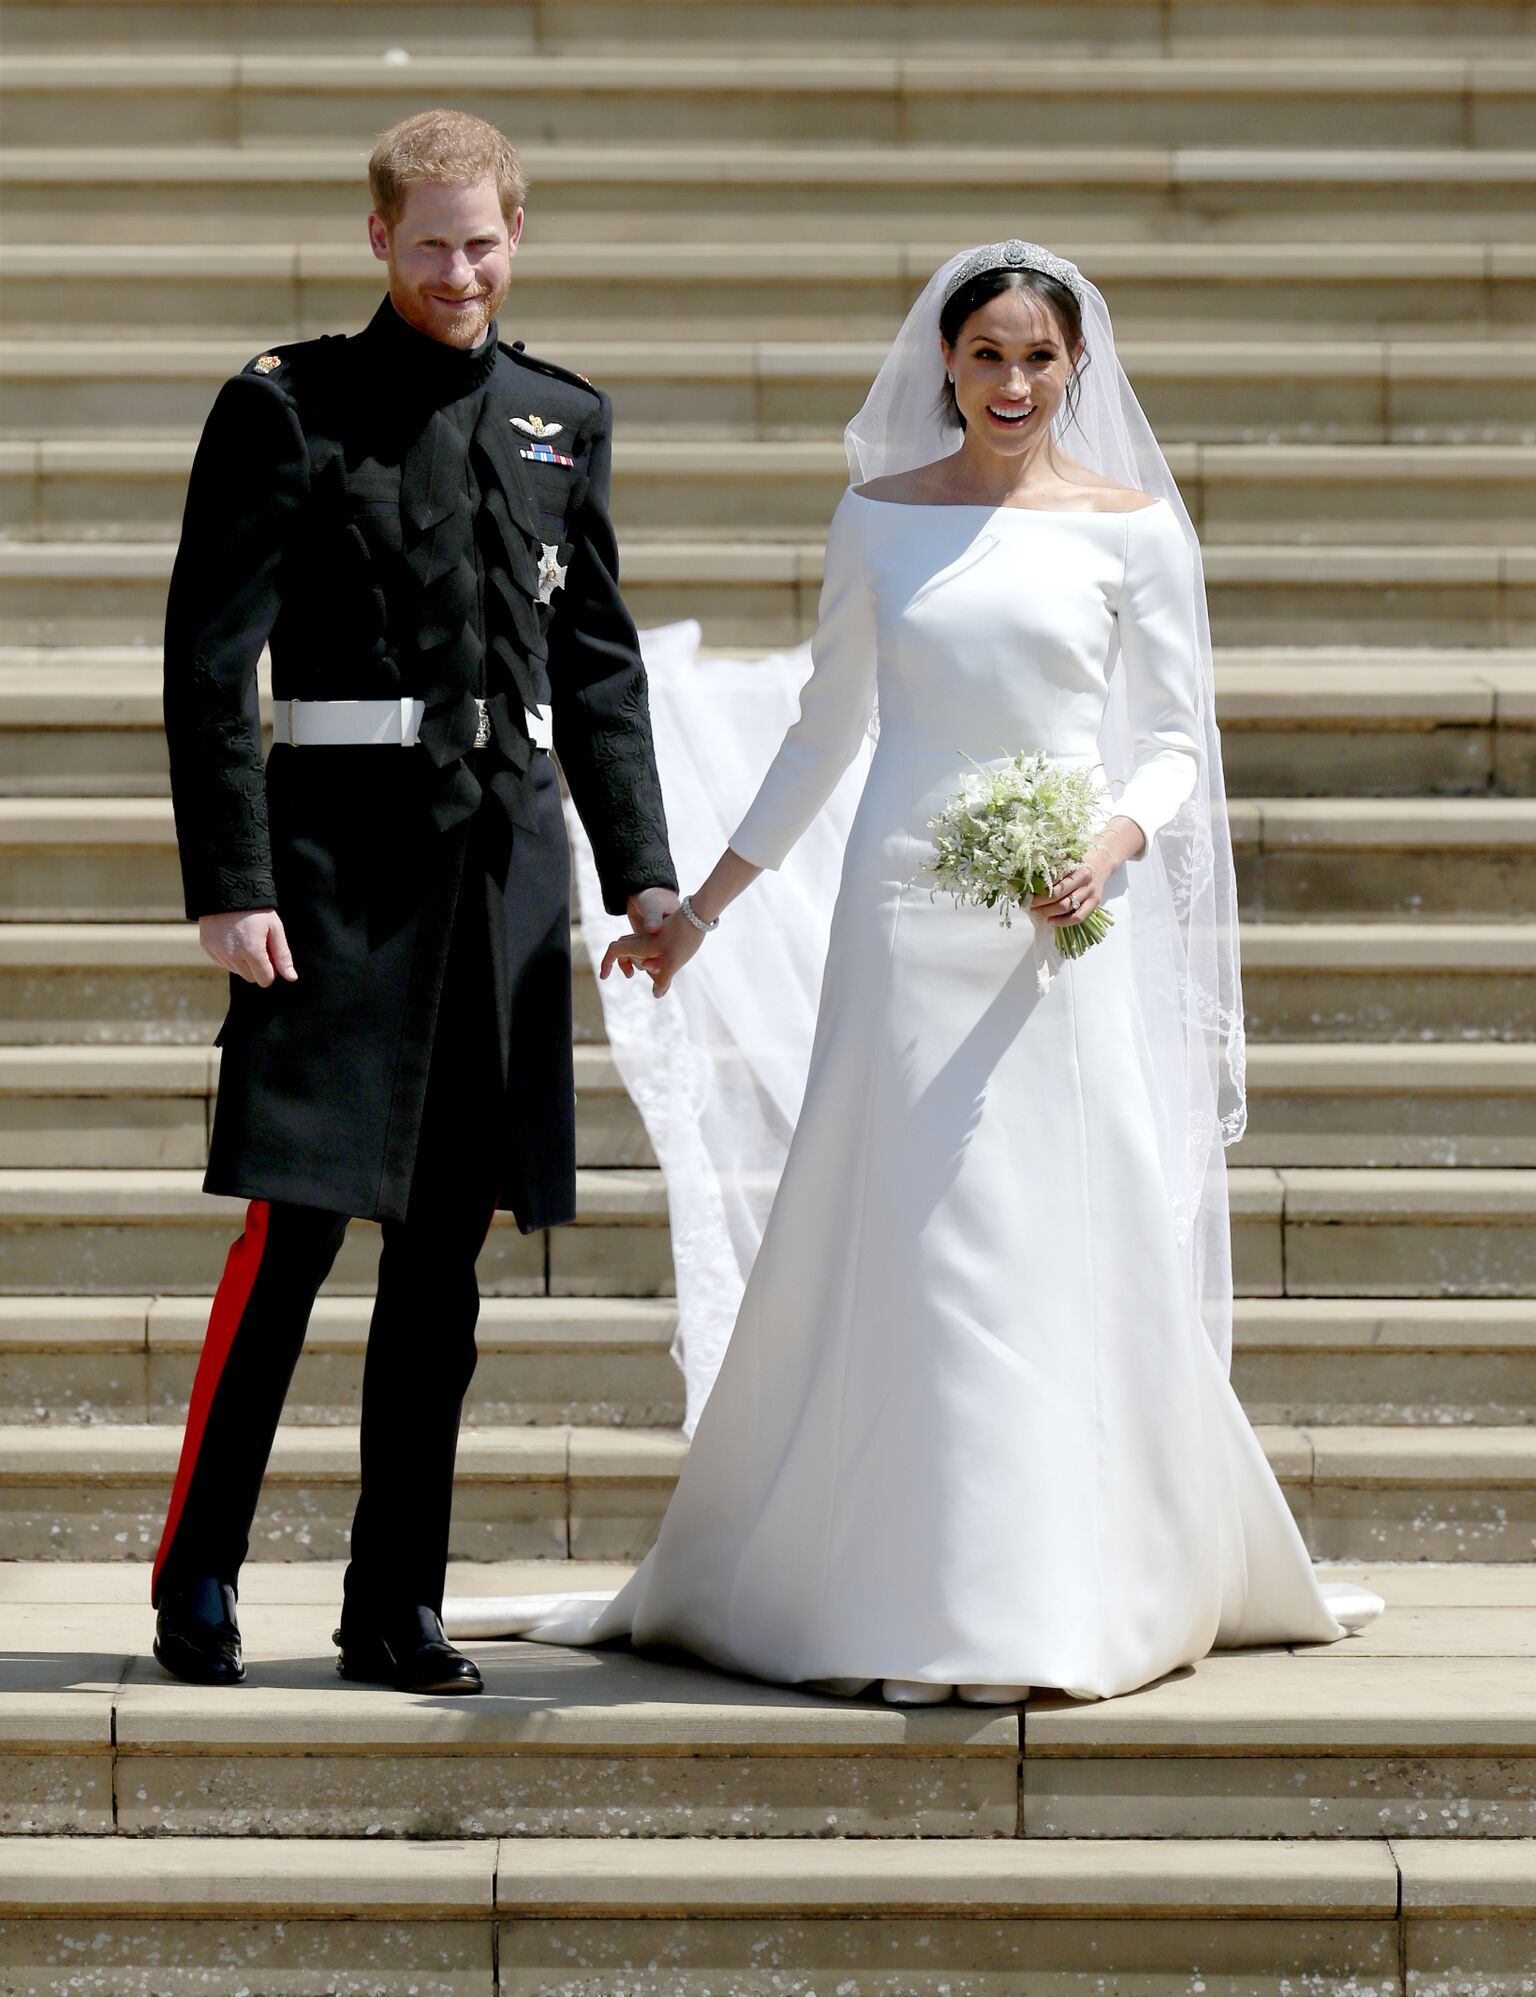 Prince Harry and Meghan Markle leaving the church on their wedding day | Getty Images / Global Images Ukraine